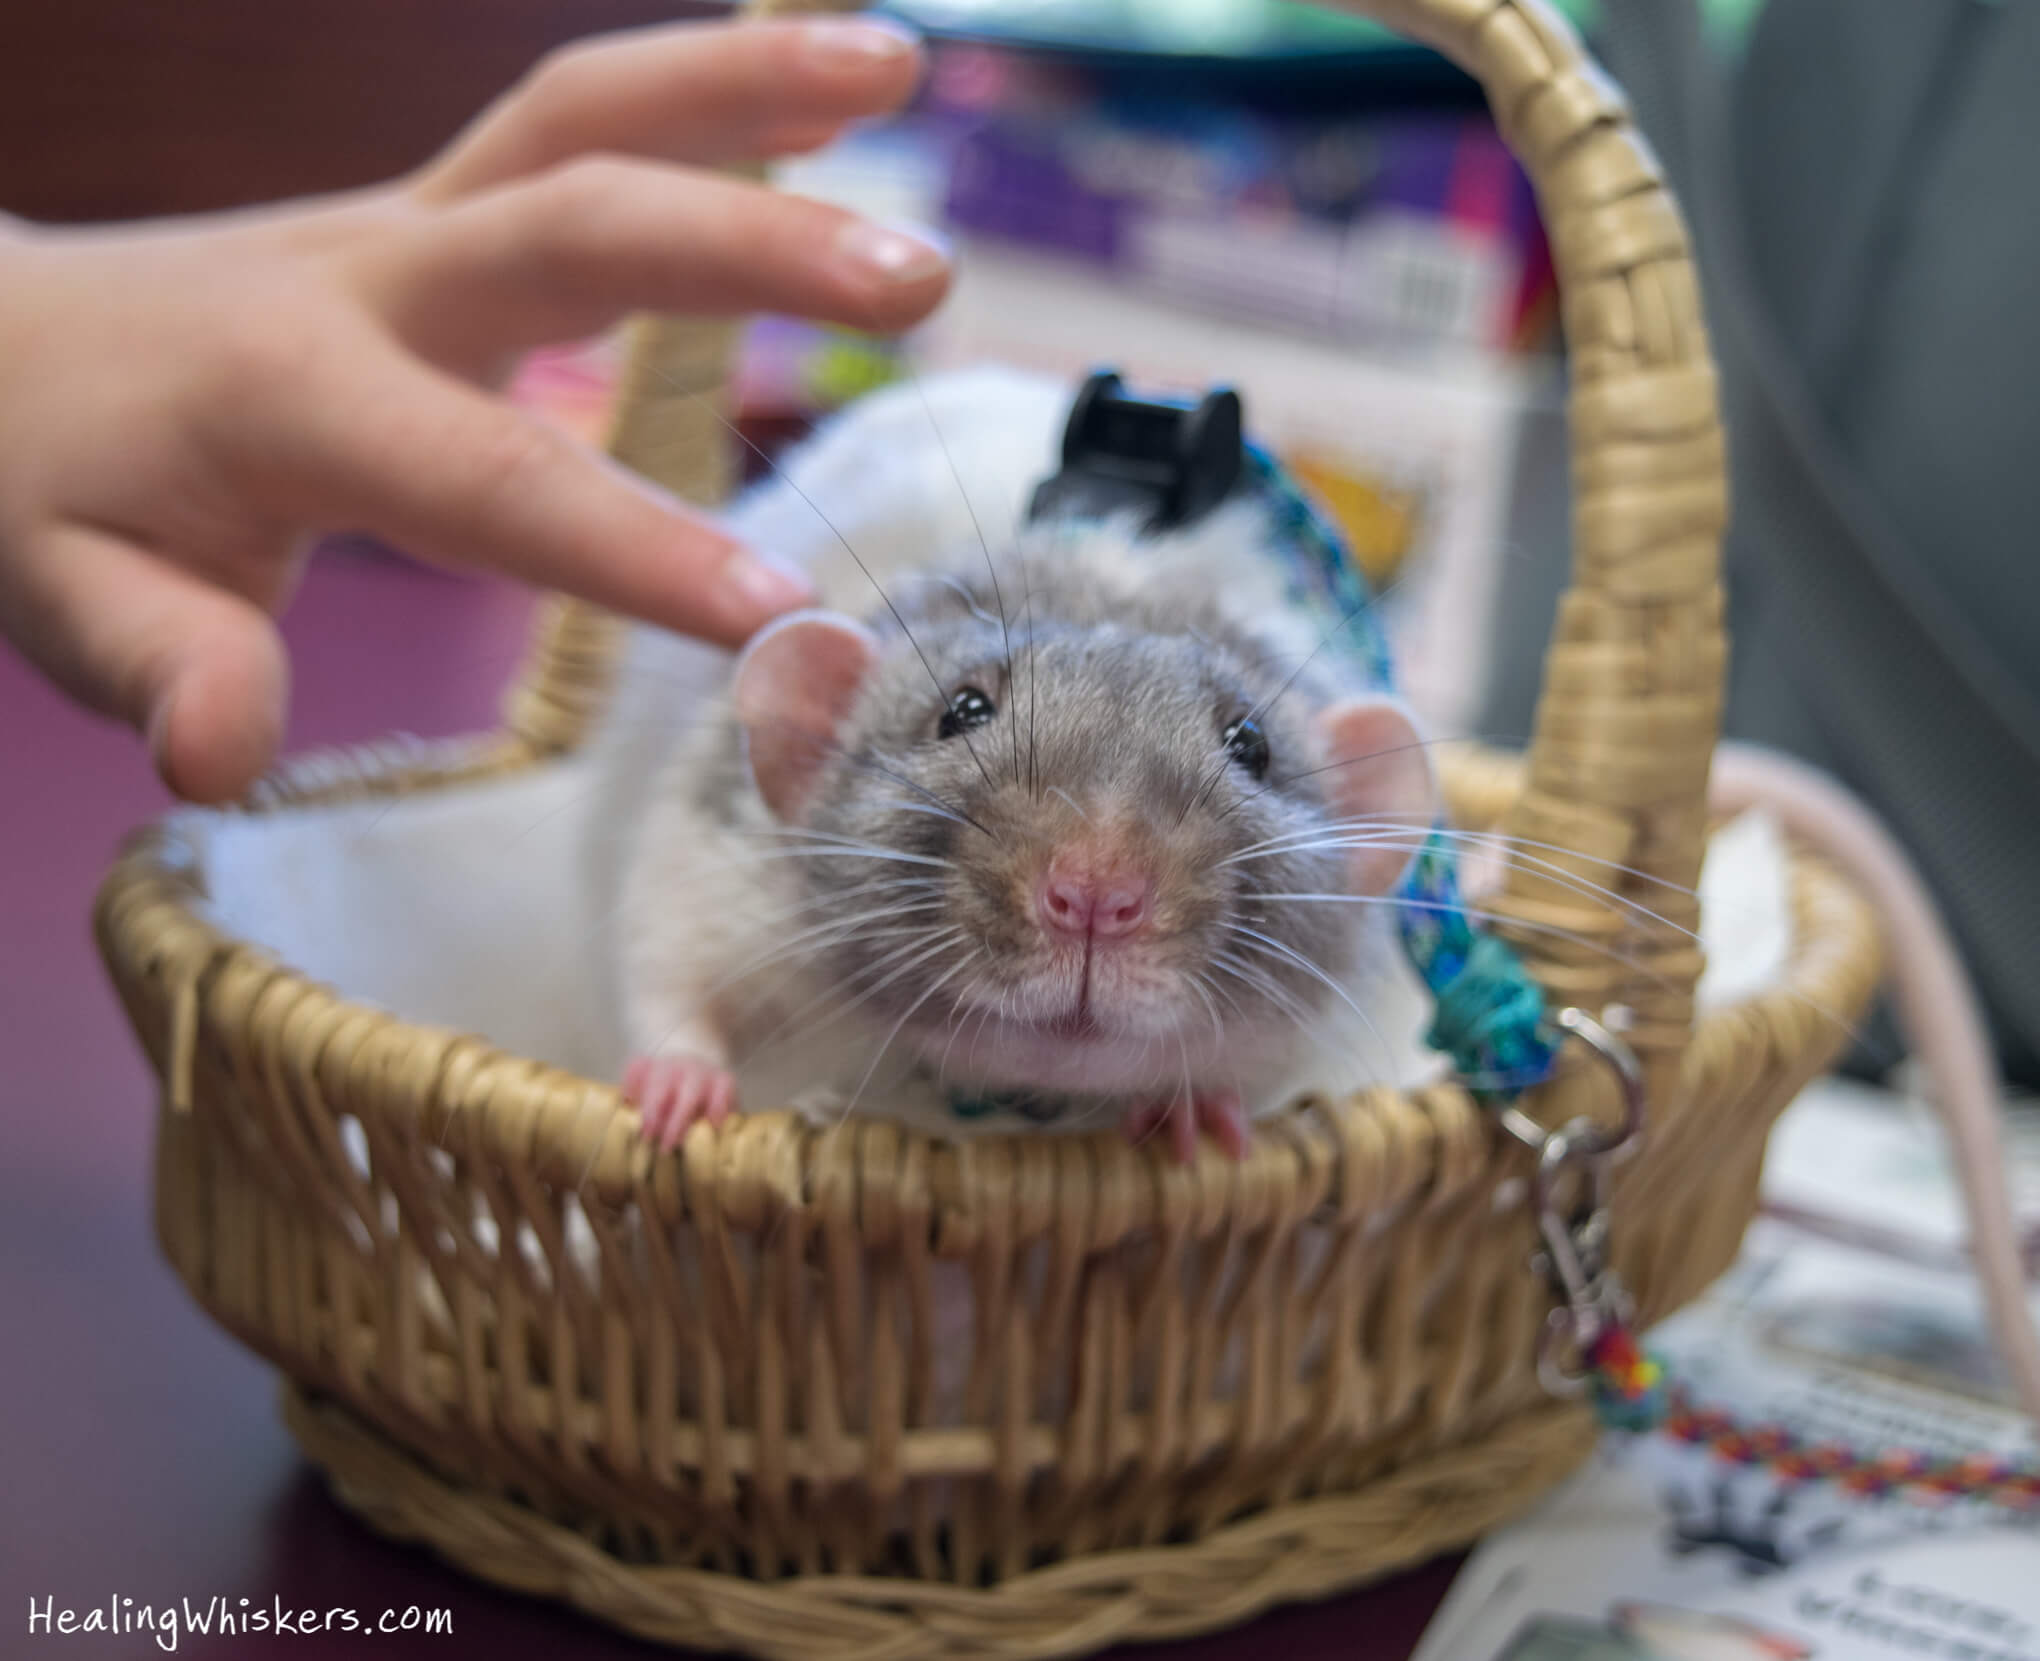 A therapy rat rests in a basket while a child pets him gently with one finger